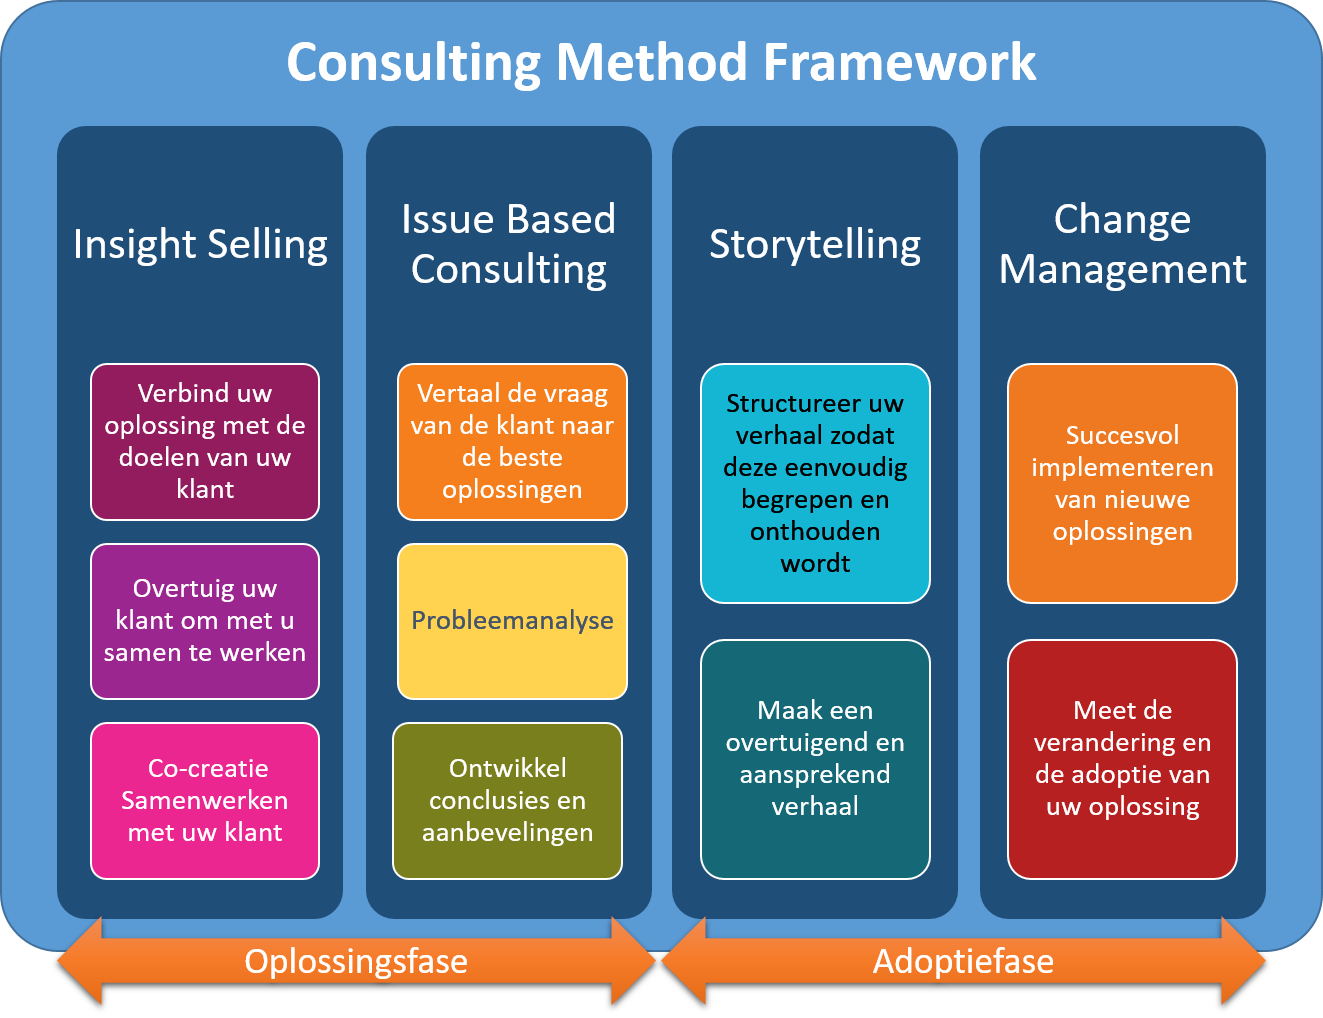 Consulting Method Framework - NL